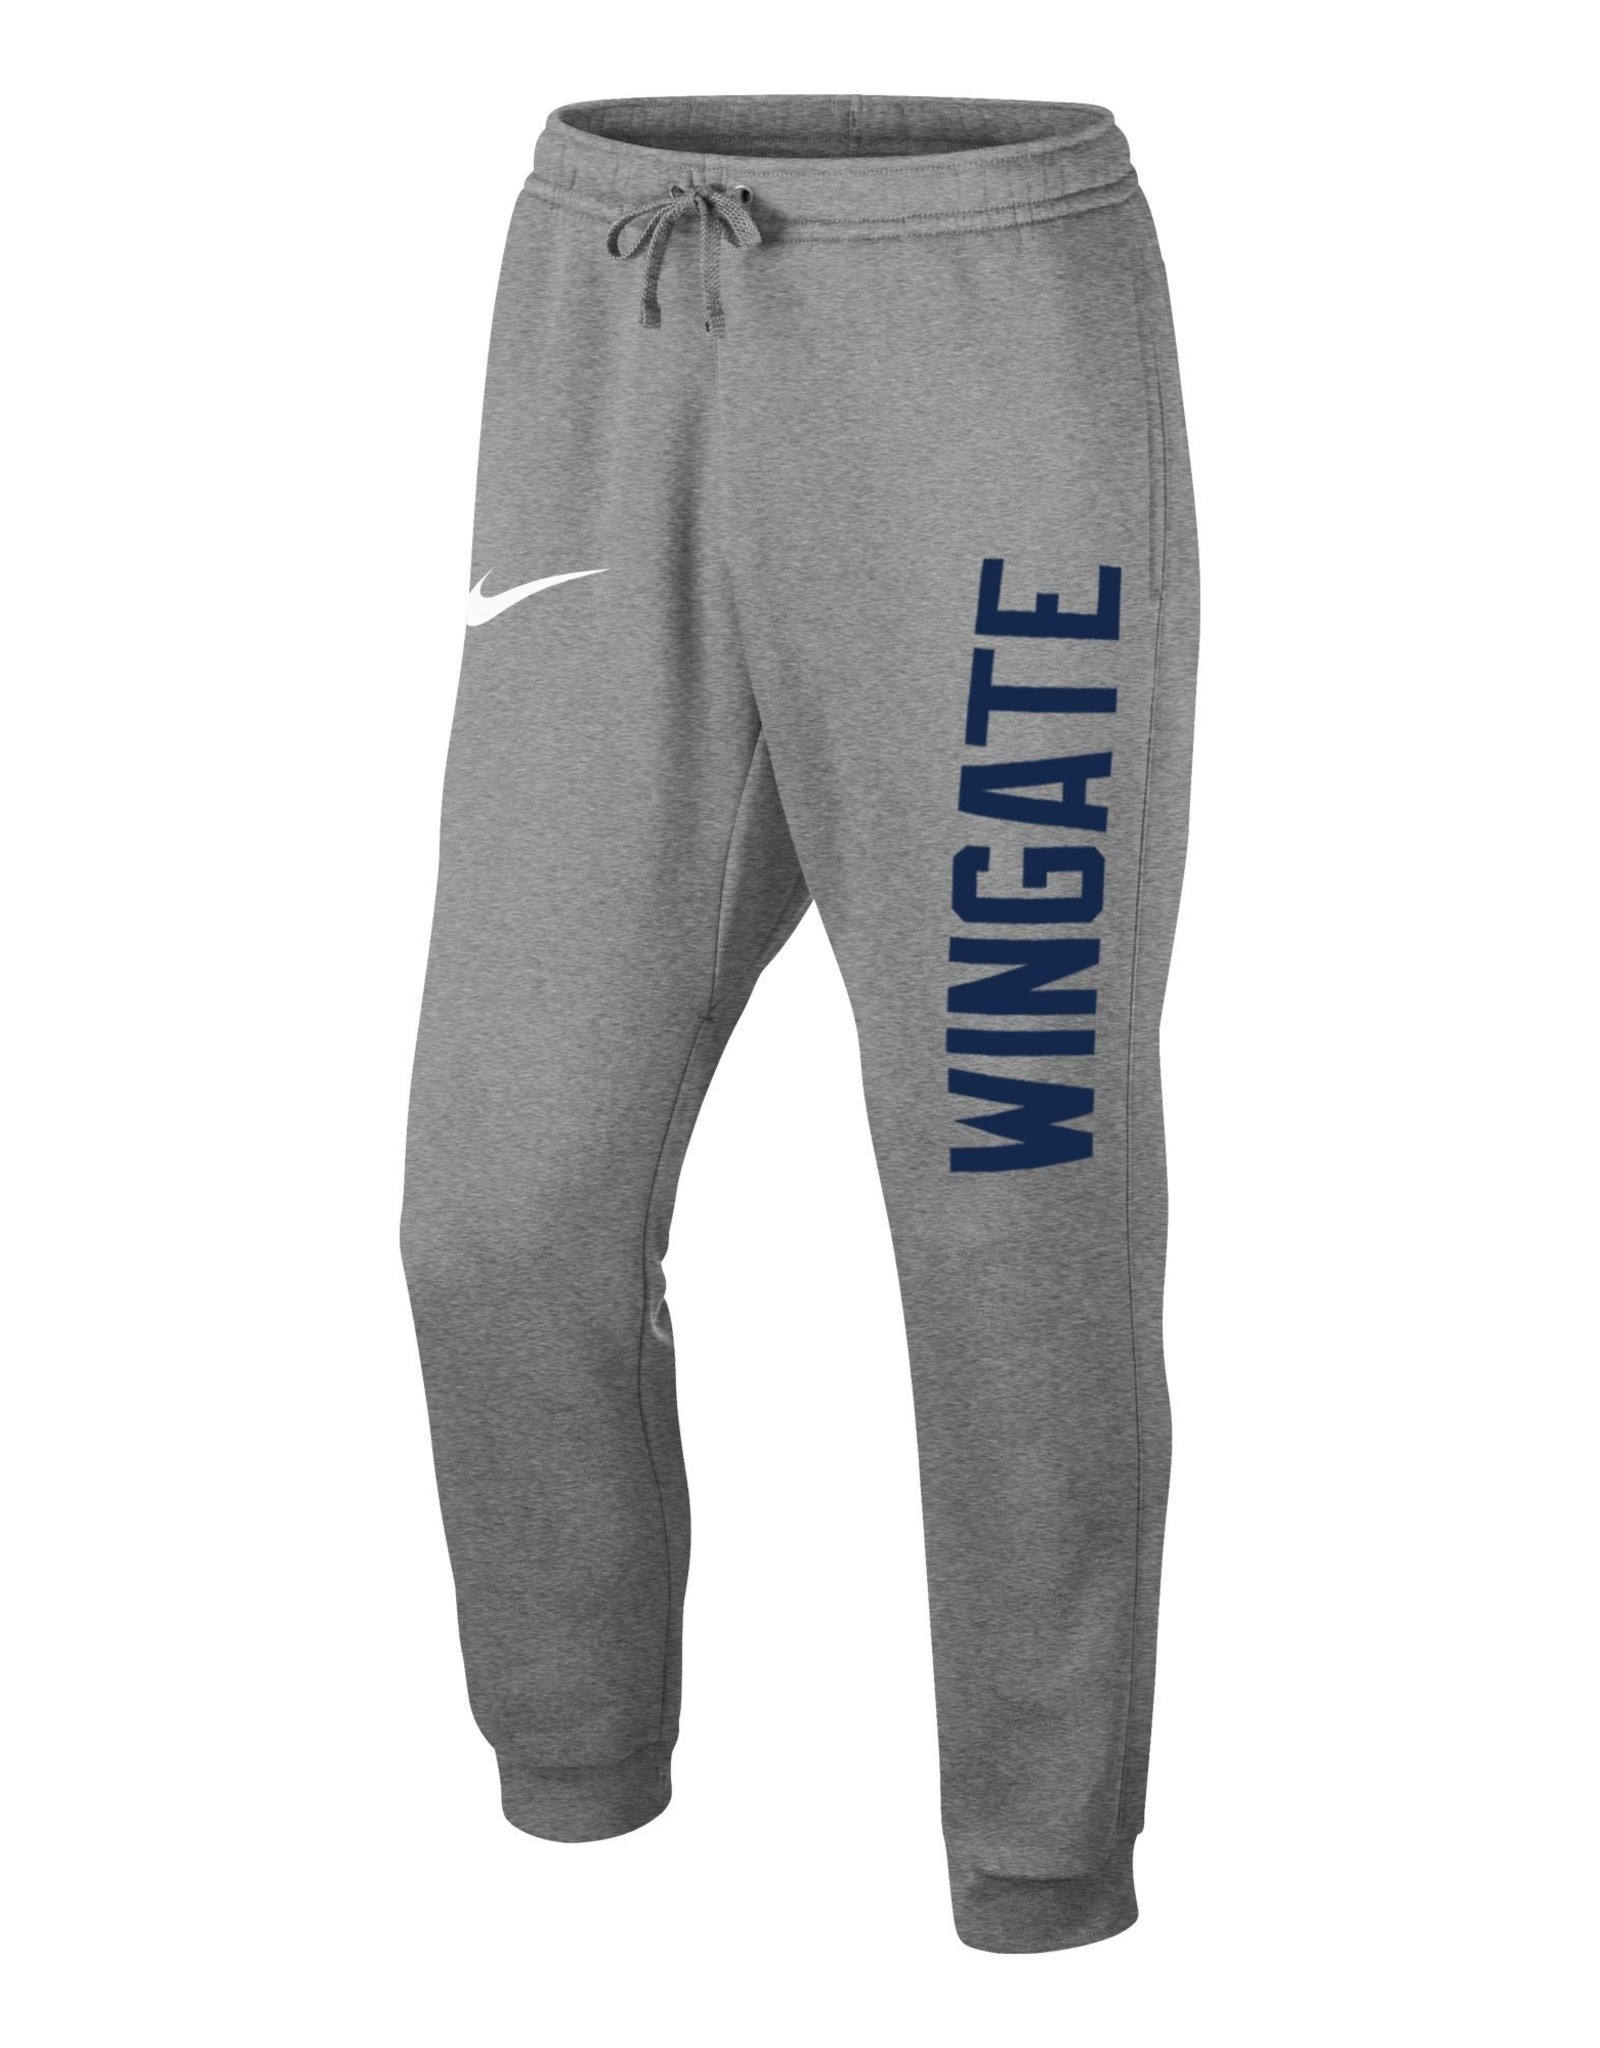 Nike Unisex Dark Heather Club Fleece Jogger